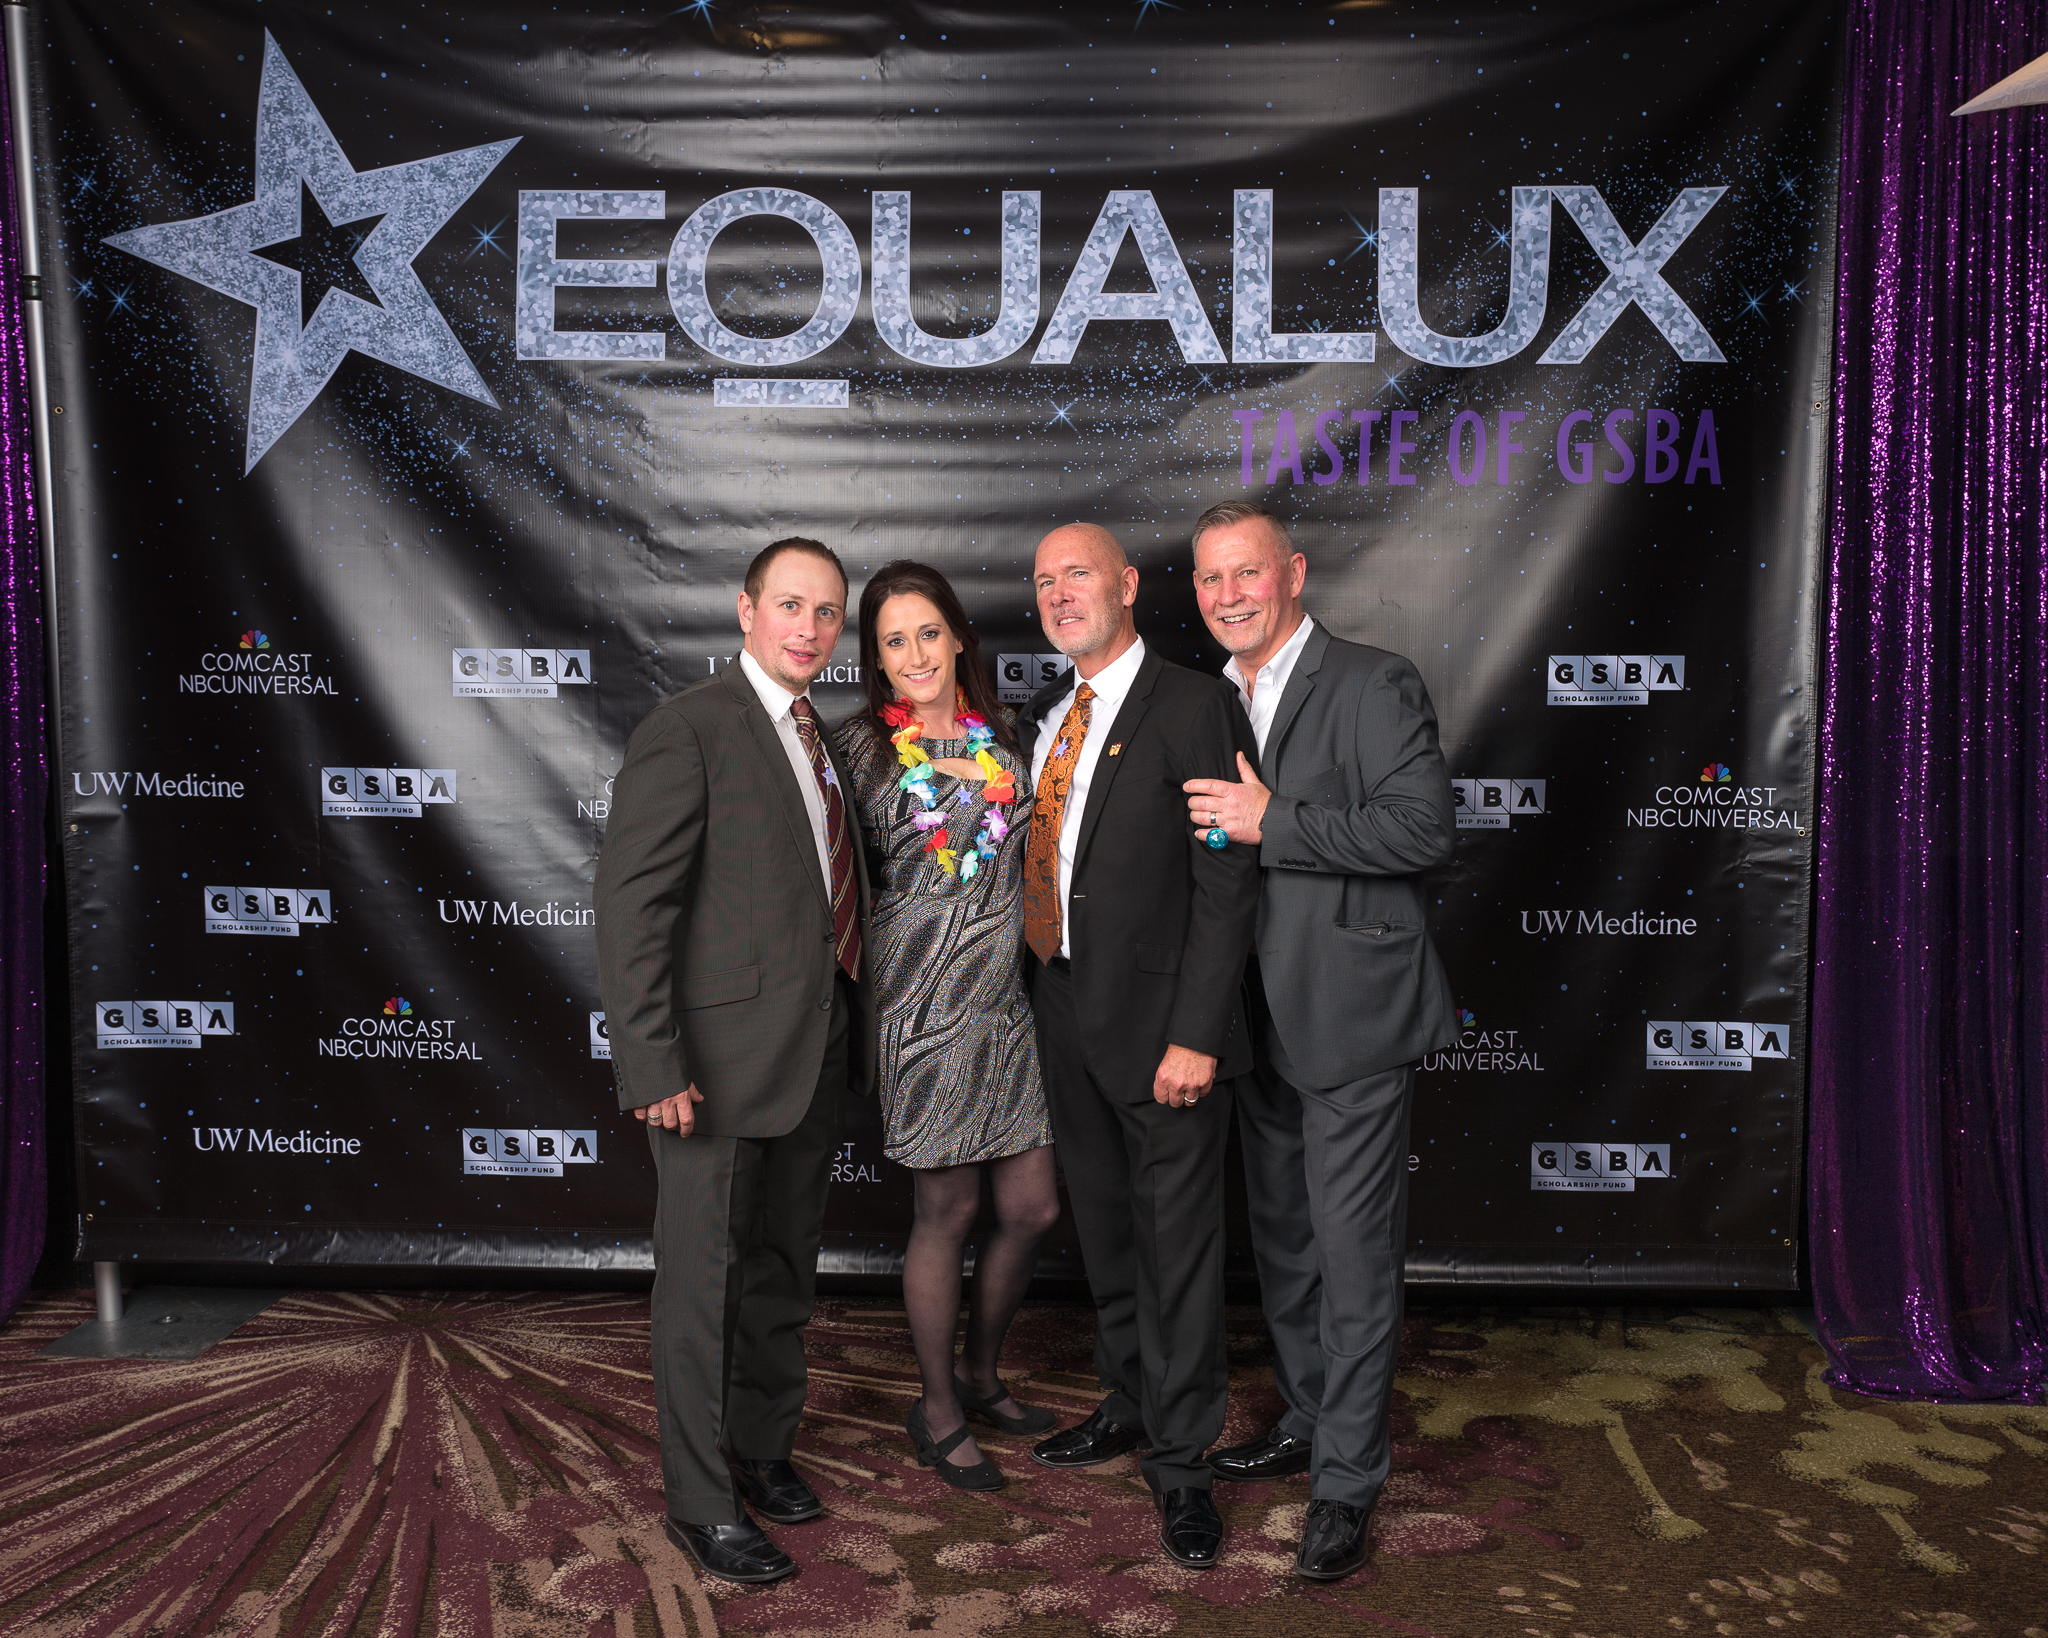 111718_GSBA EQUALUX at The Westin Seattle (Credit- Nate Gowdy)-58.jpg